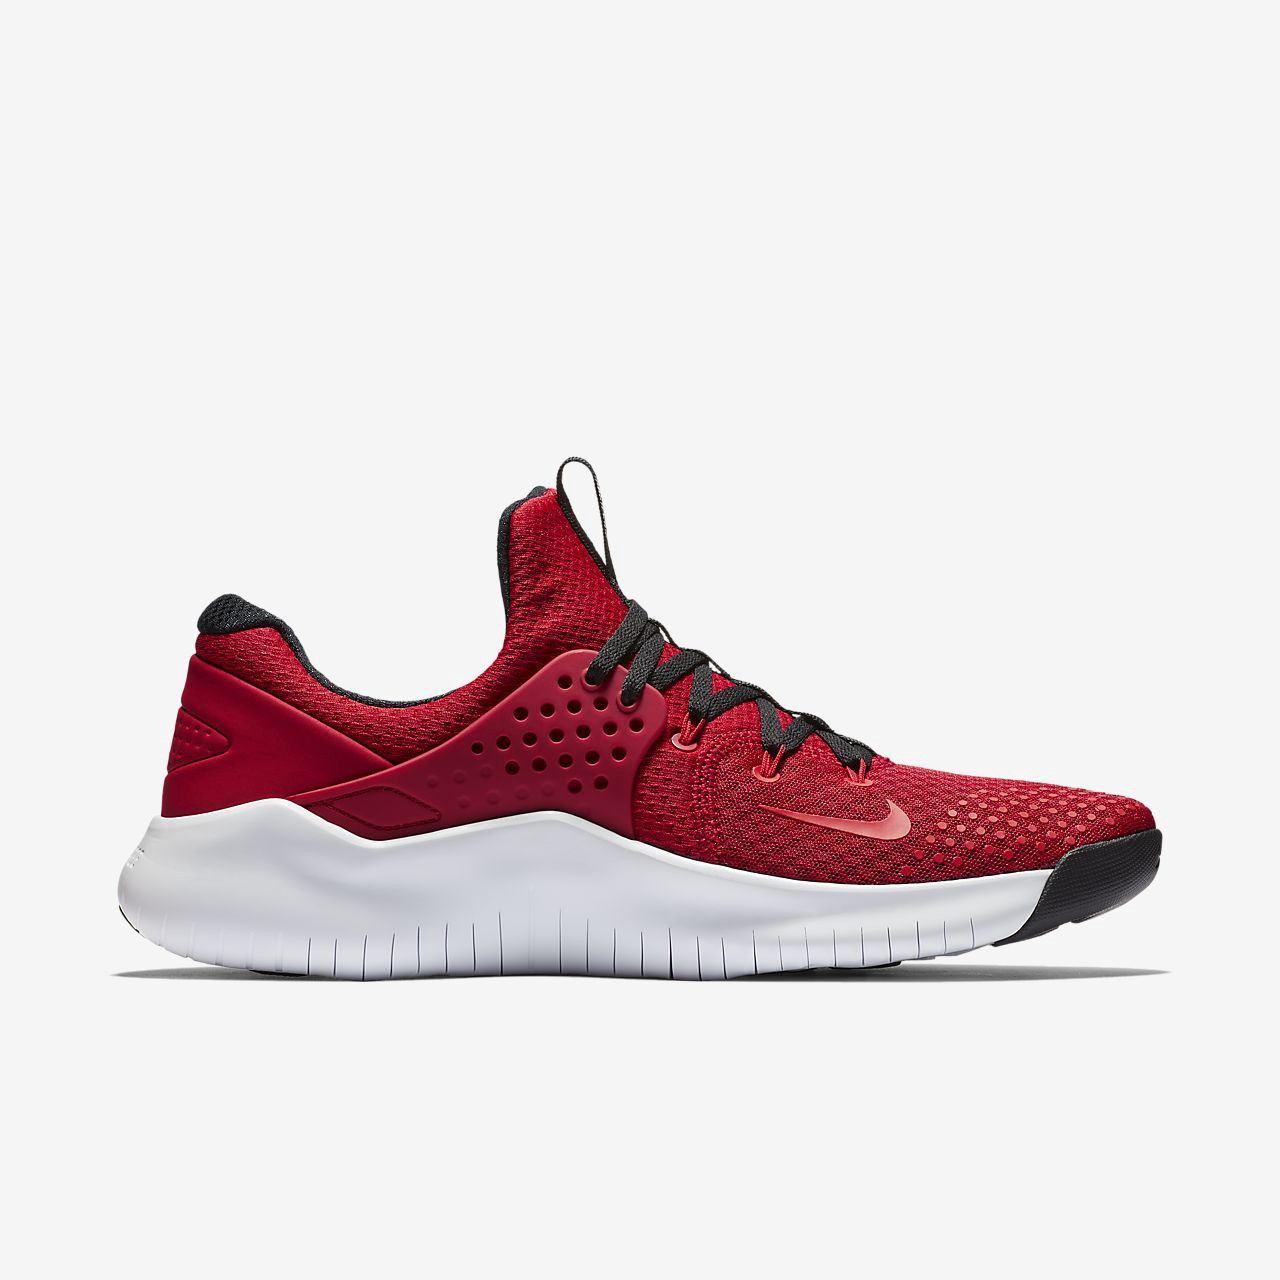 wholesale dealer 1278c 4d24e Nike Free Tr V8 Men s Training Shoe - 11.5